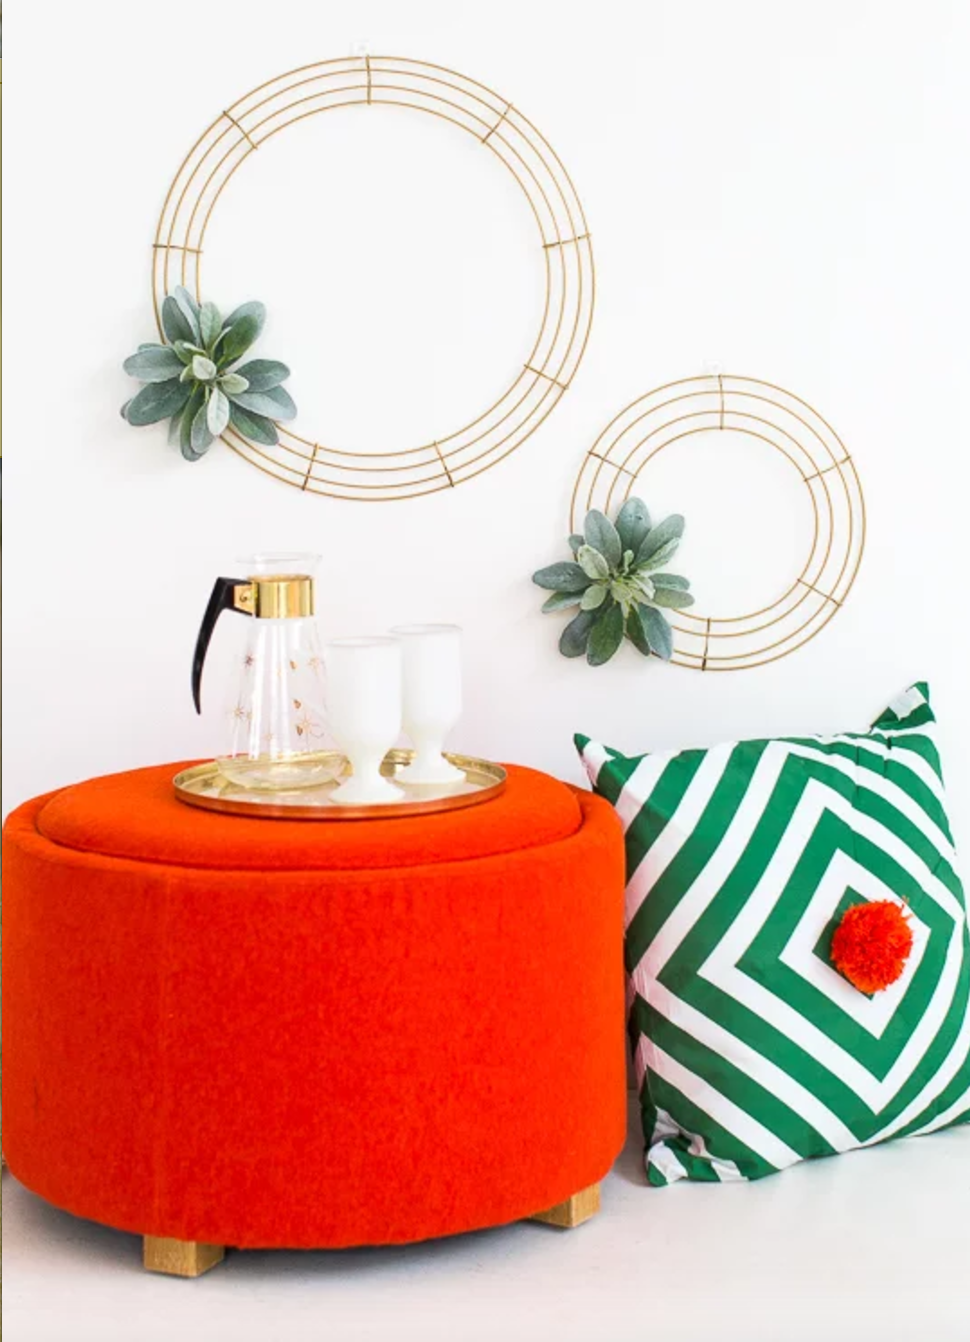 Simple DIY Geometric Wreath